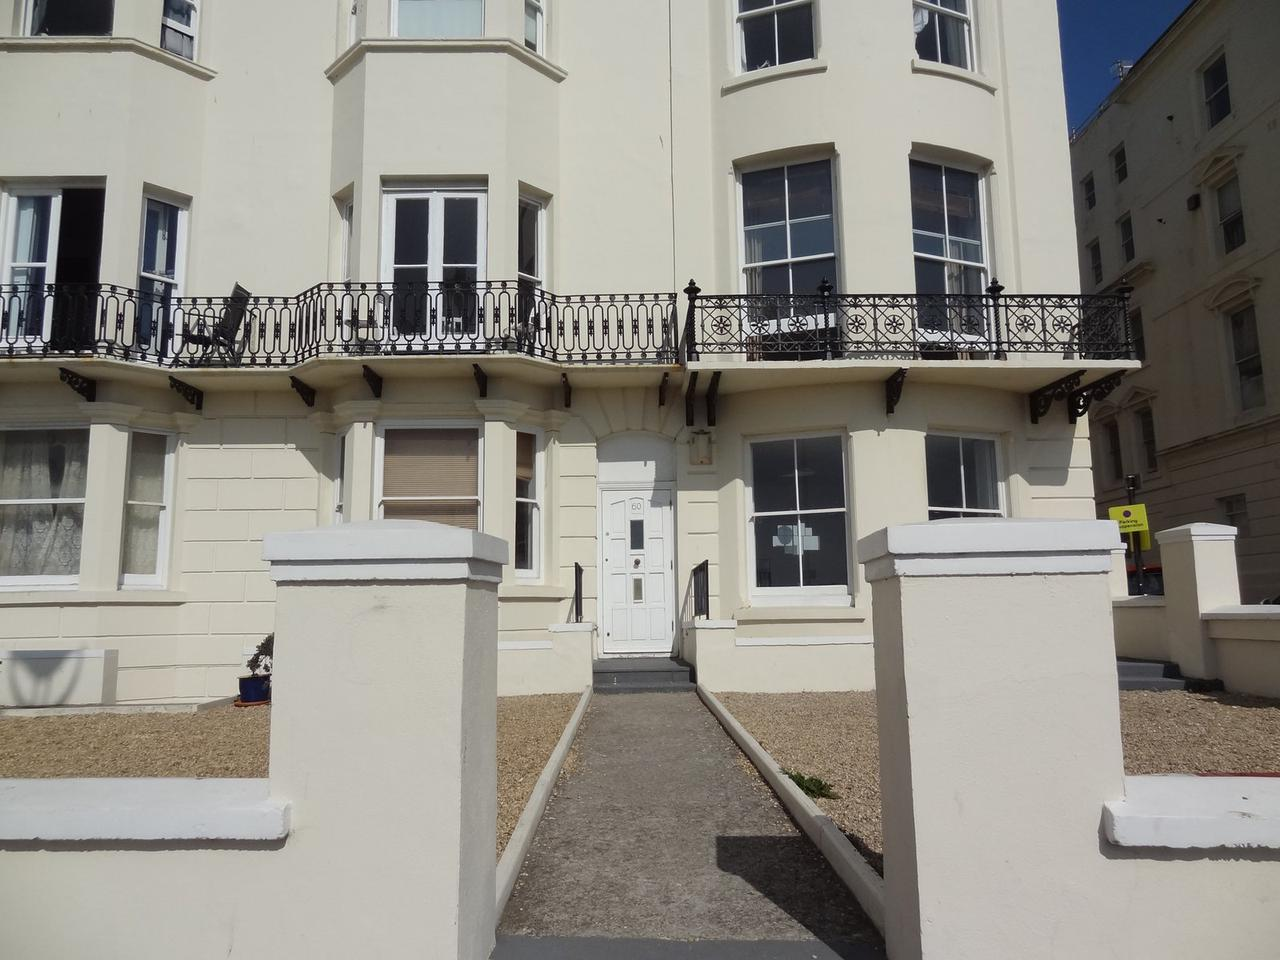 Sea Views Apartment, Brighton & Hove Images - 9